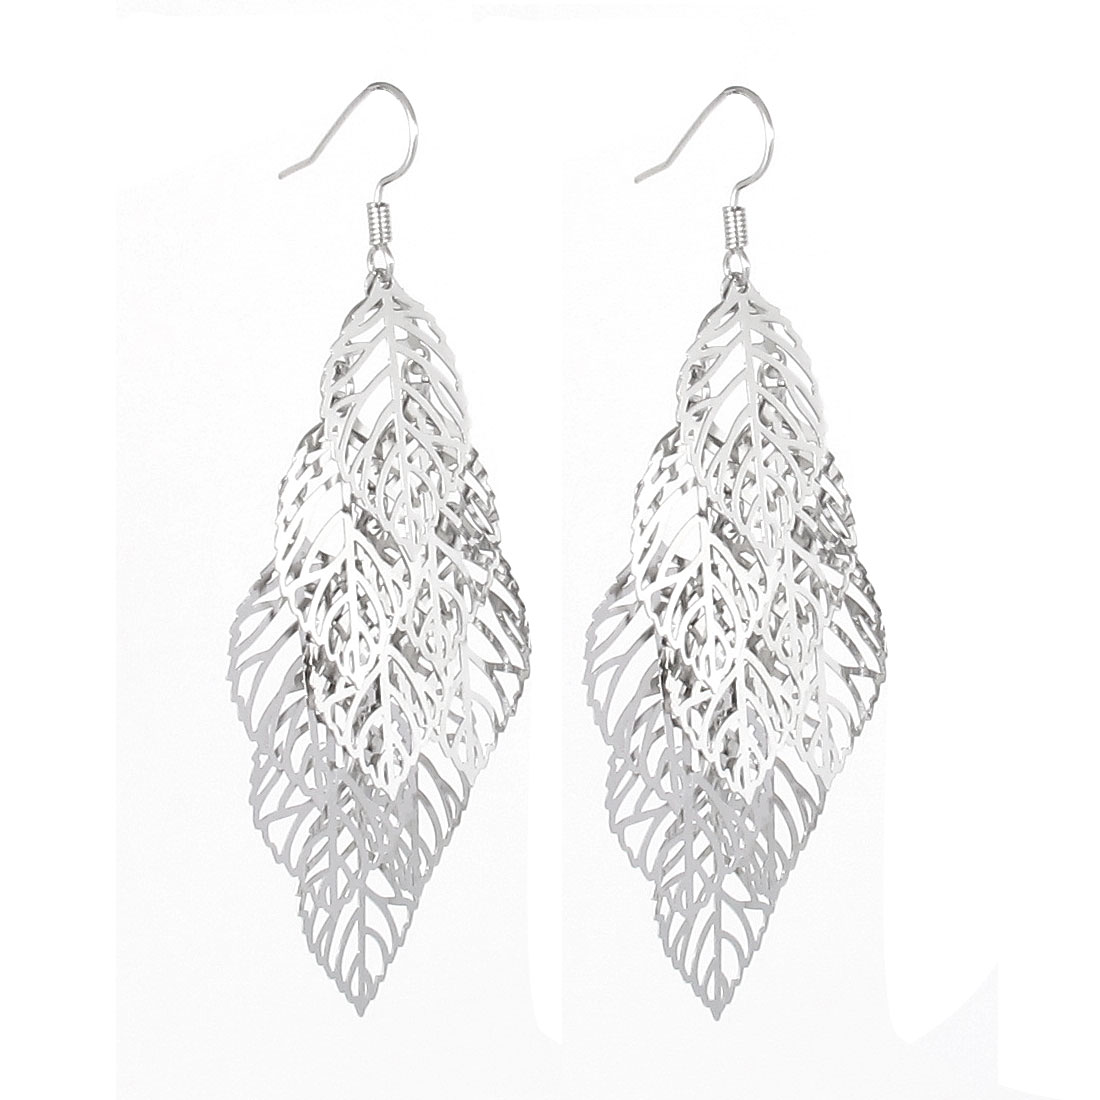 Lady Leaves Design Drop Dangle Fish Hook Earring Ear Decor Pair Silver Tone